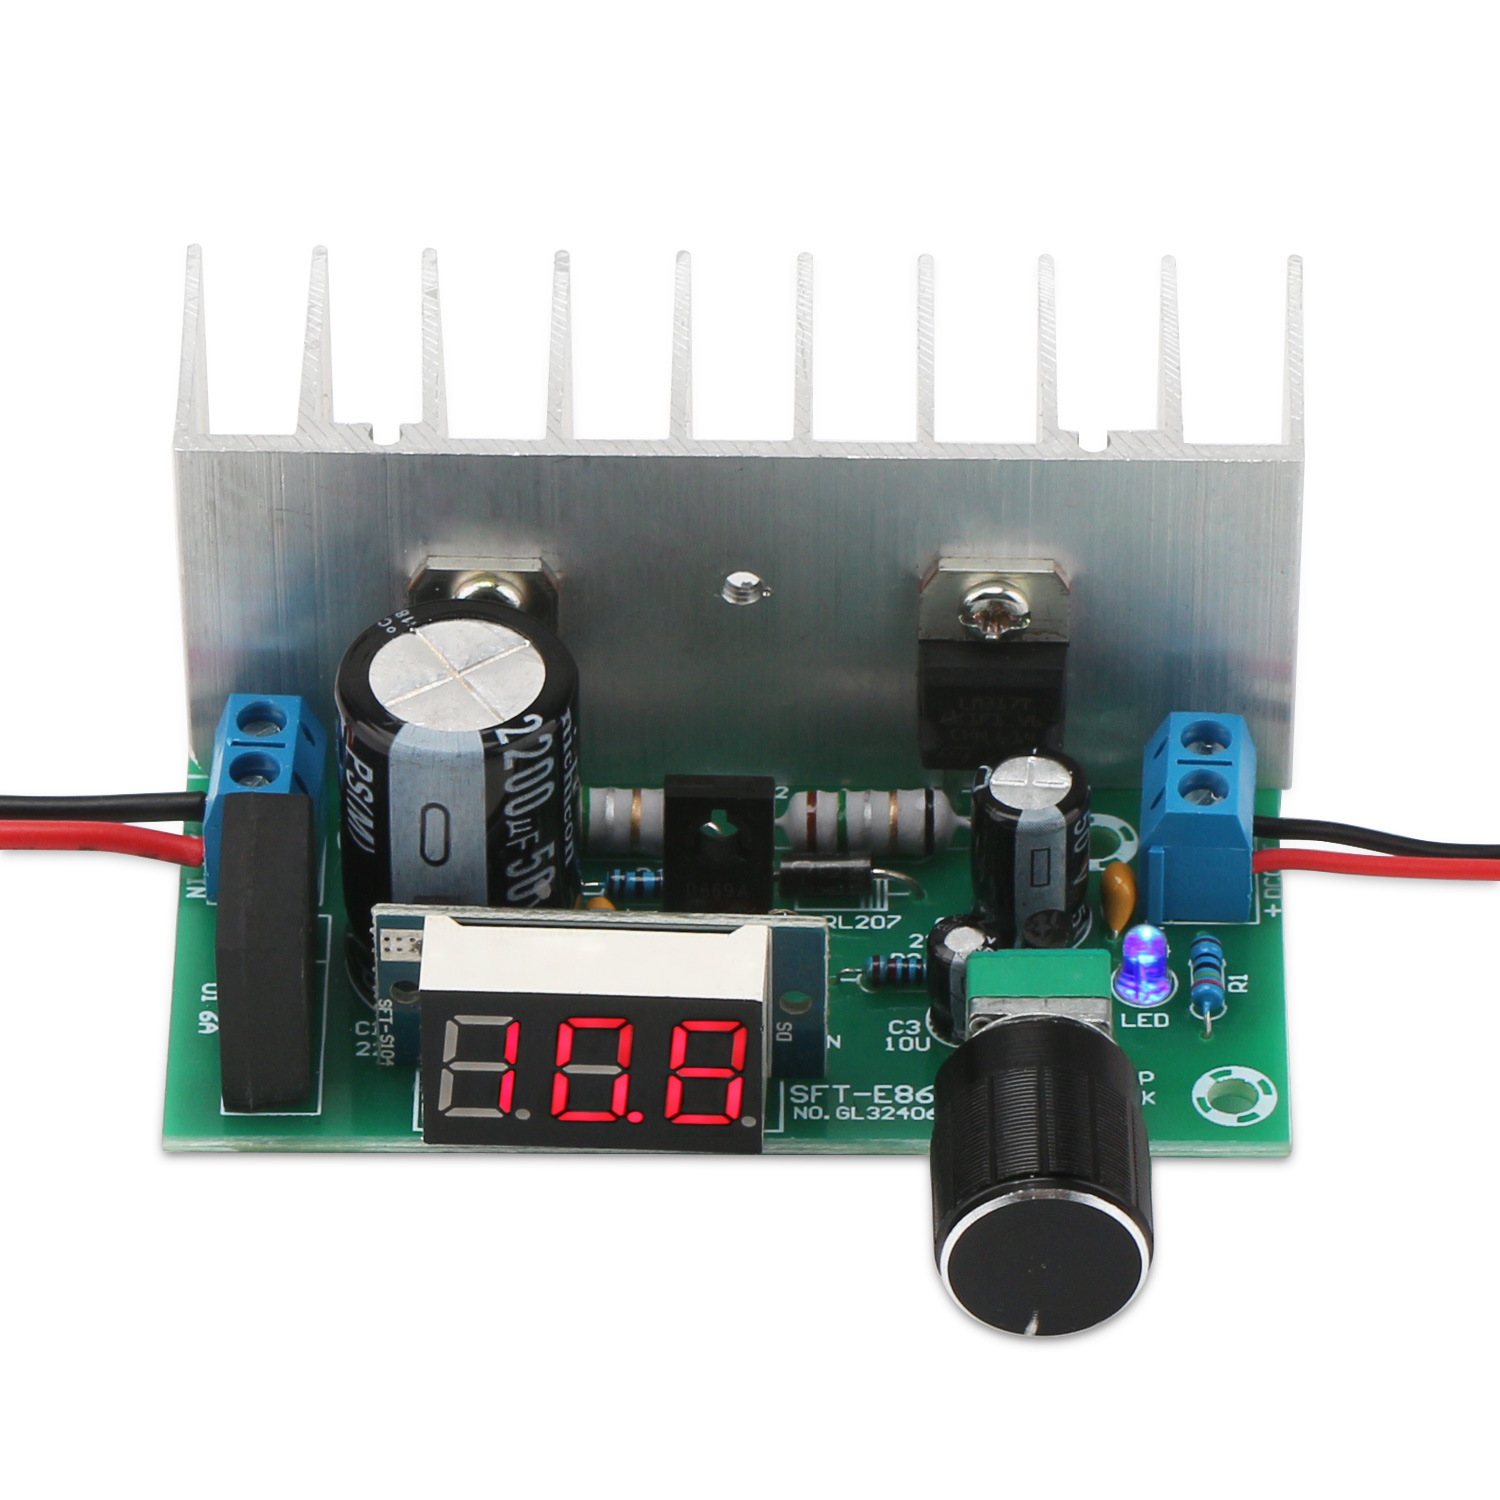 12v To 9v Voltage Regulator Circuit On Dc Converter 12v To 9v Circuit